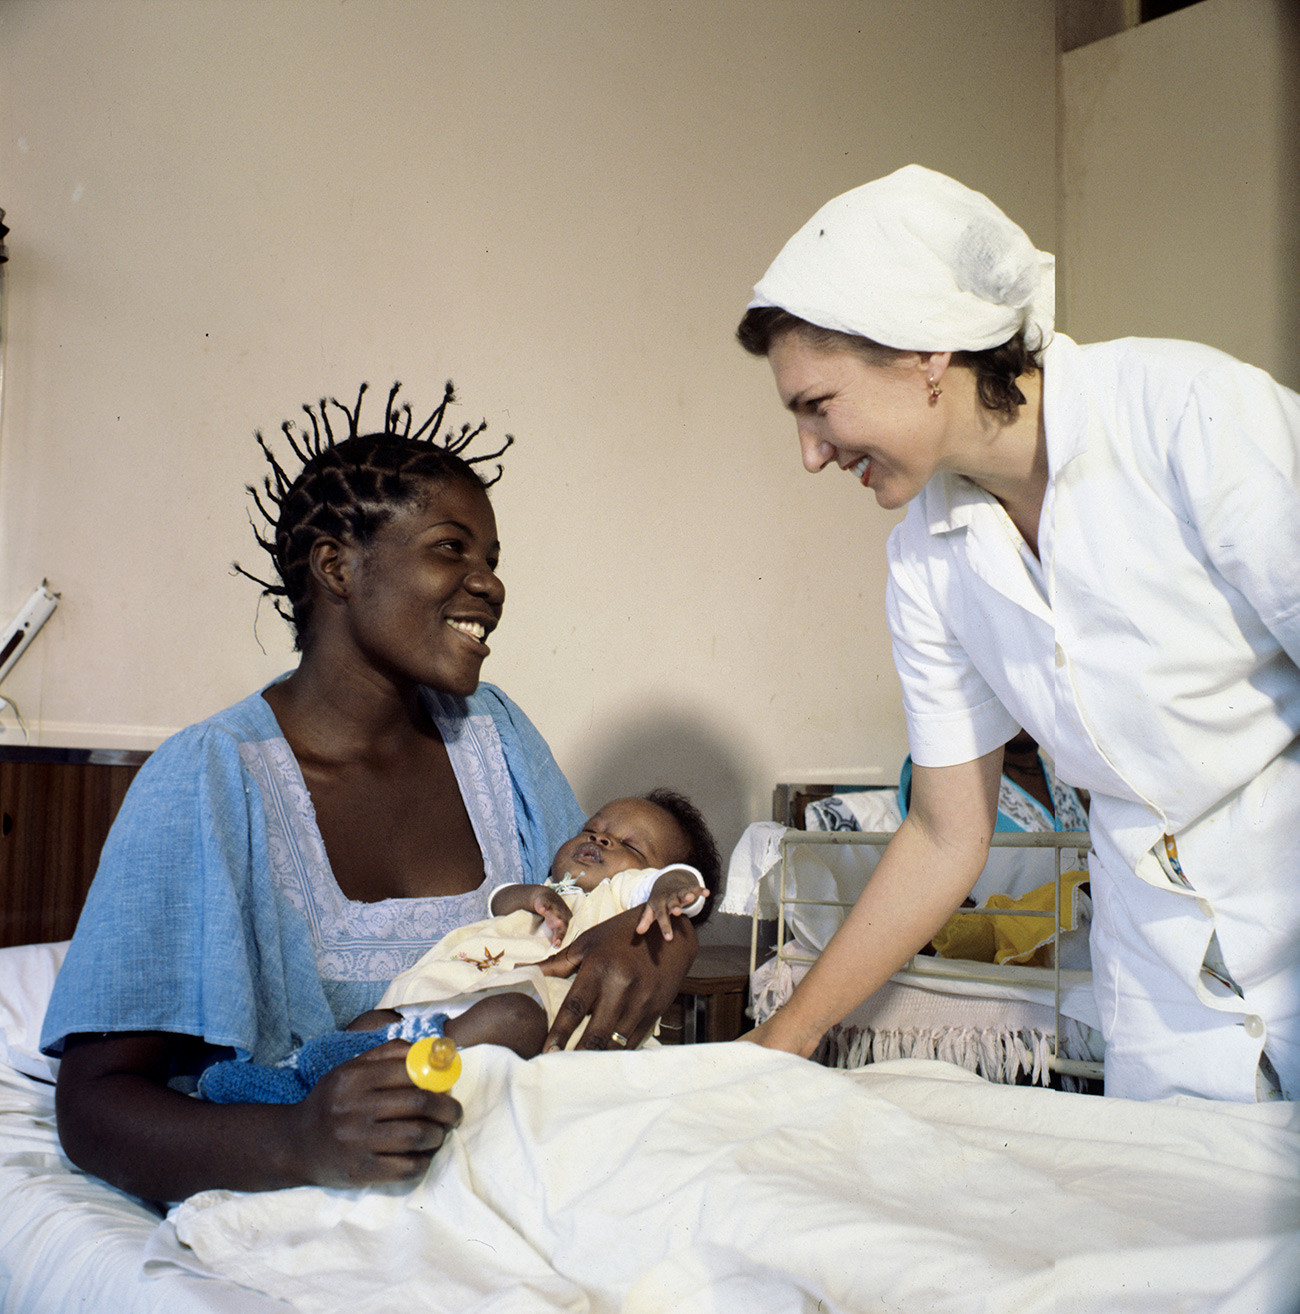 Among other things, the USSR was helping Africa with medics. A Soviet midwife in Lubango, Angola.